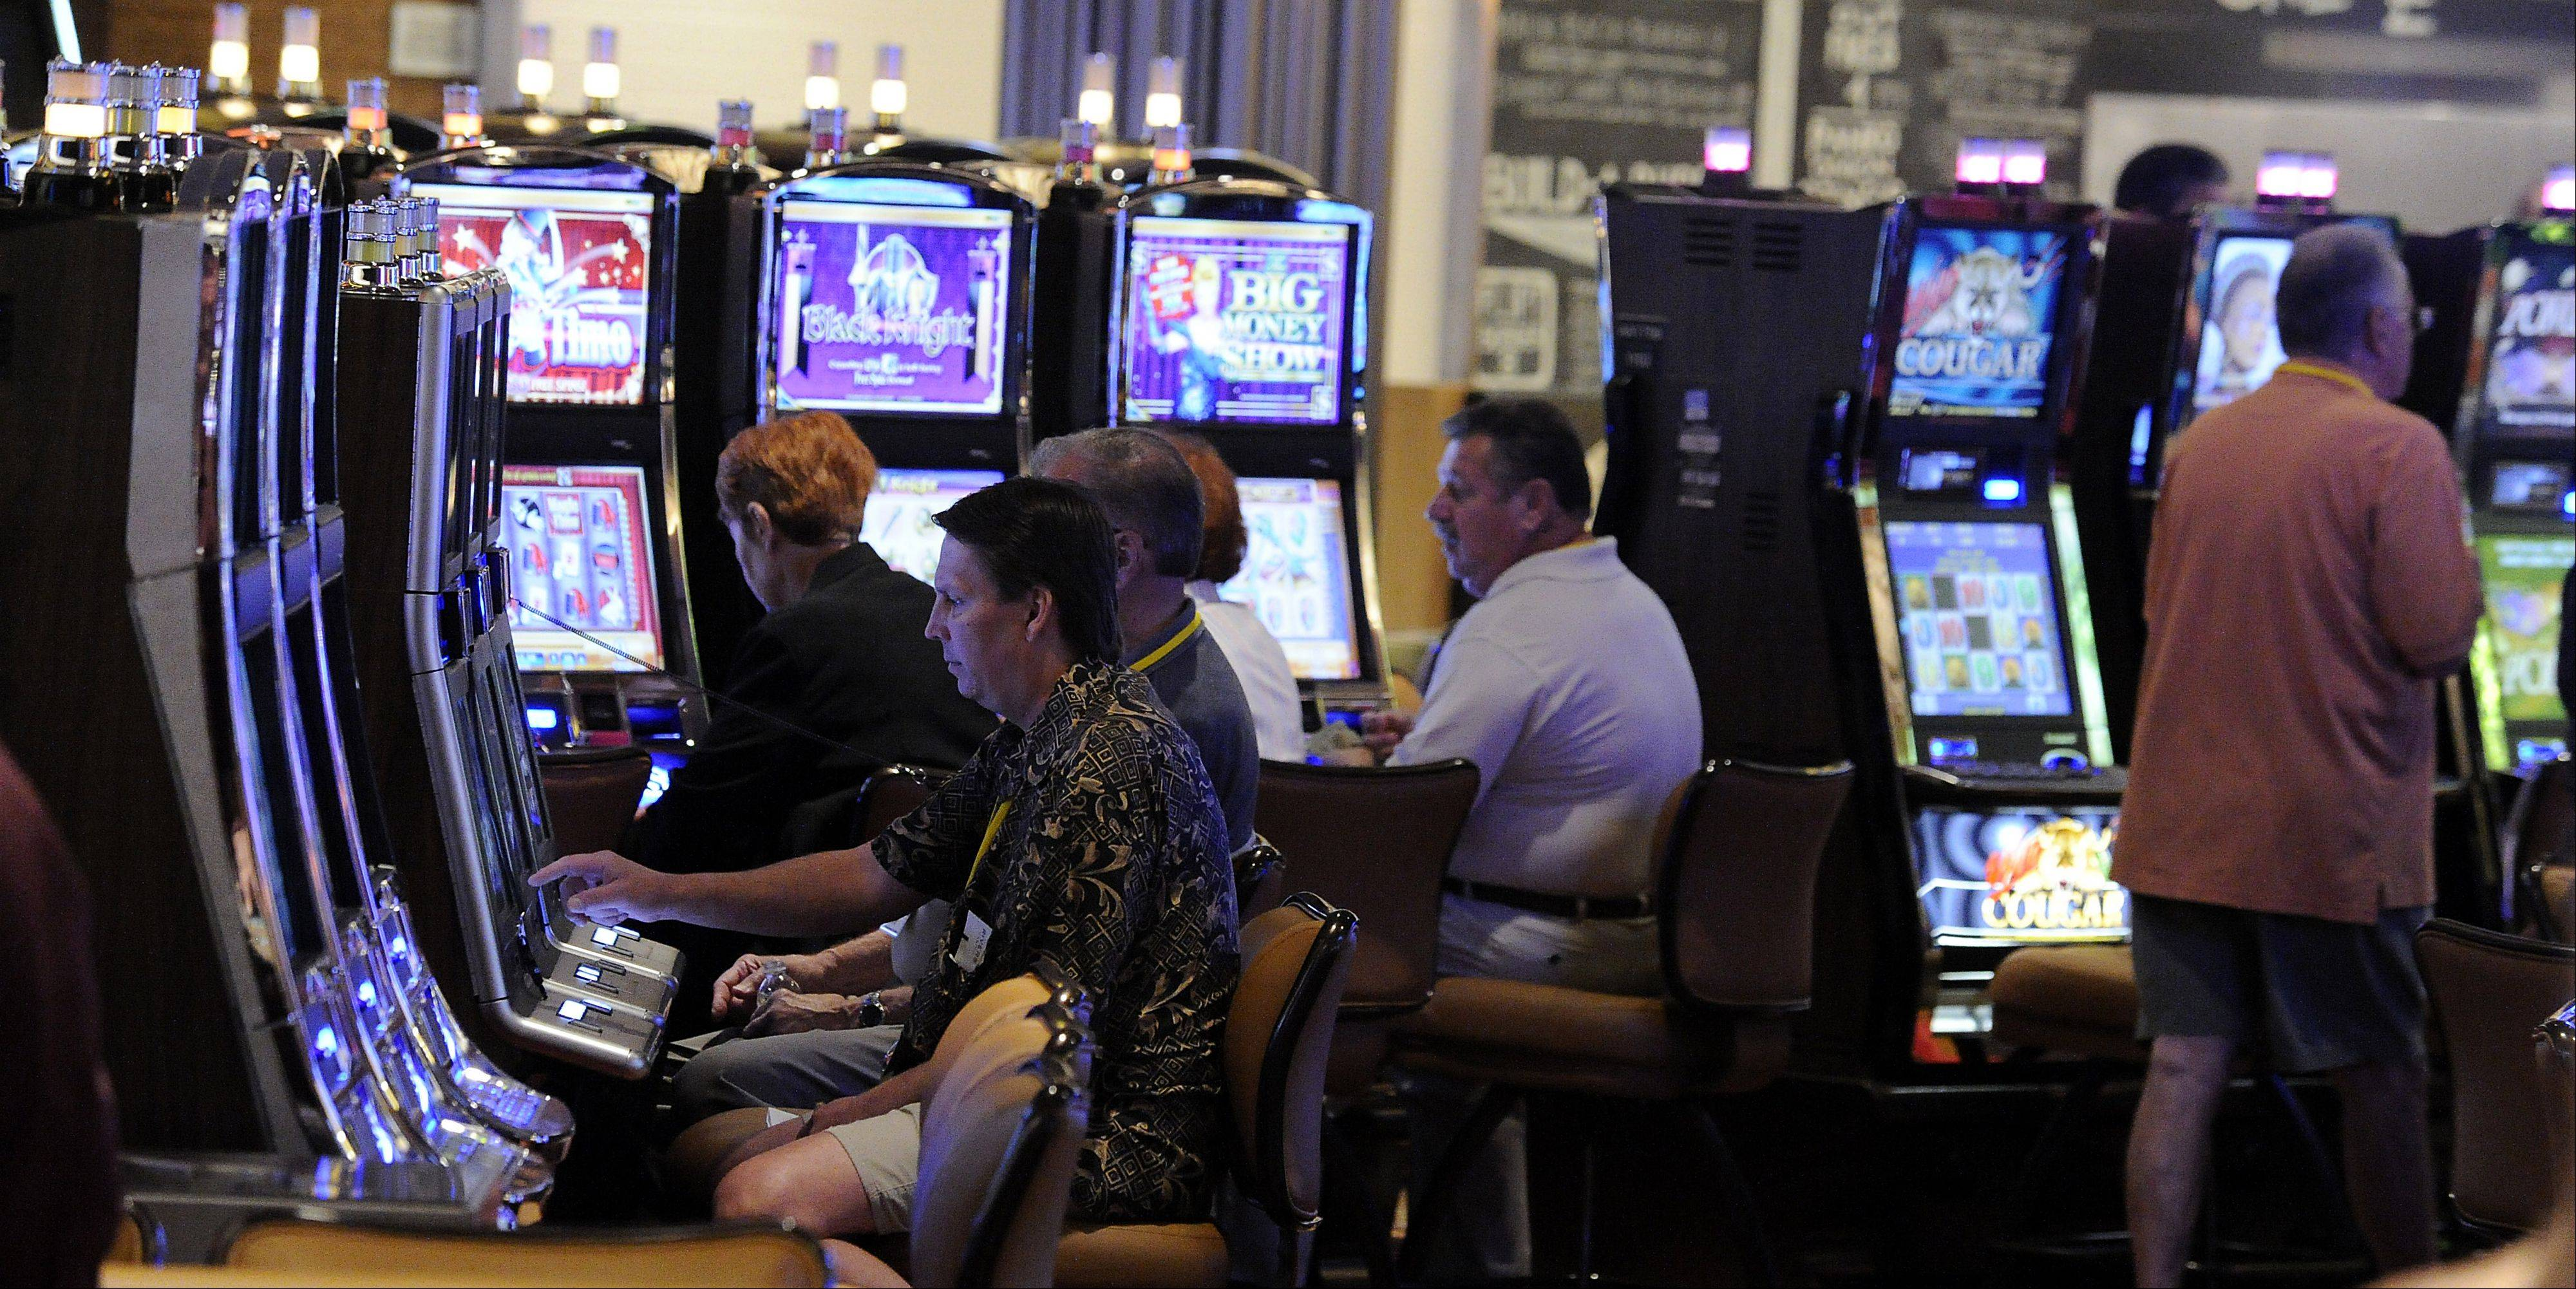 Bells of the slots fill the air to signal the opening of the Rivers Casino in Des Plaines to over 1,000 VIPs on Friday night.